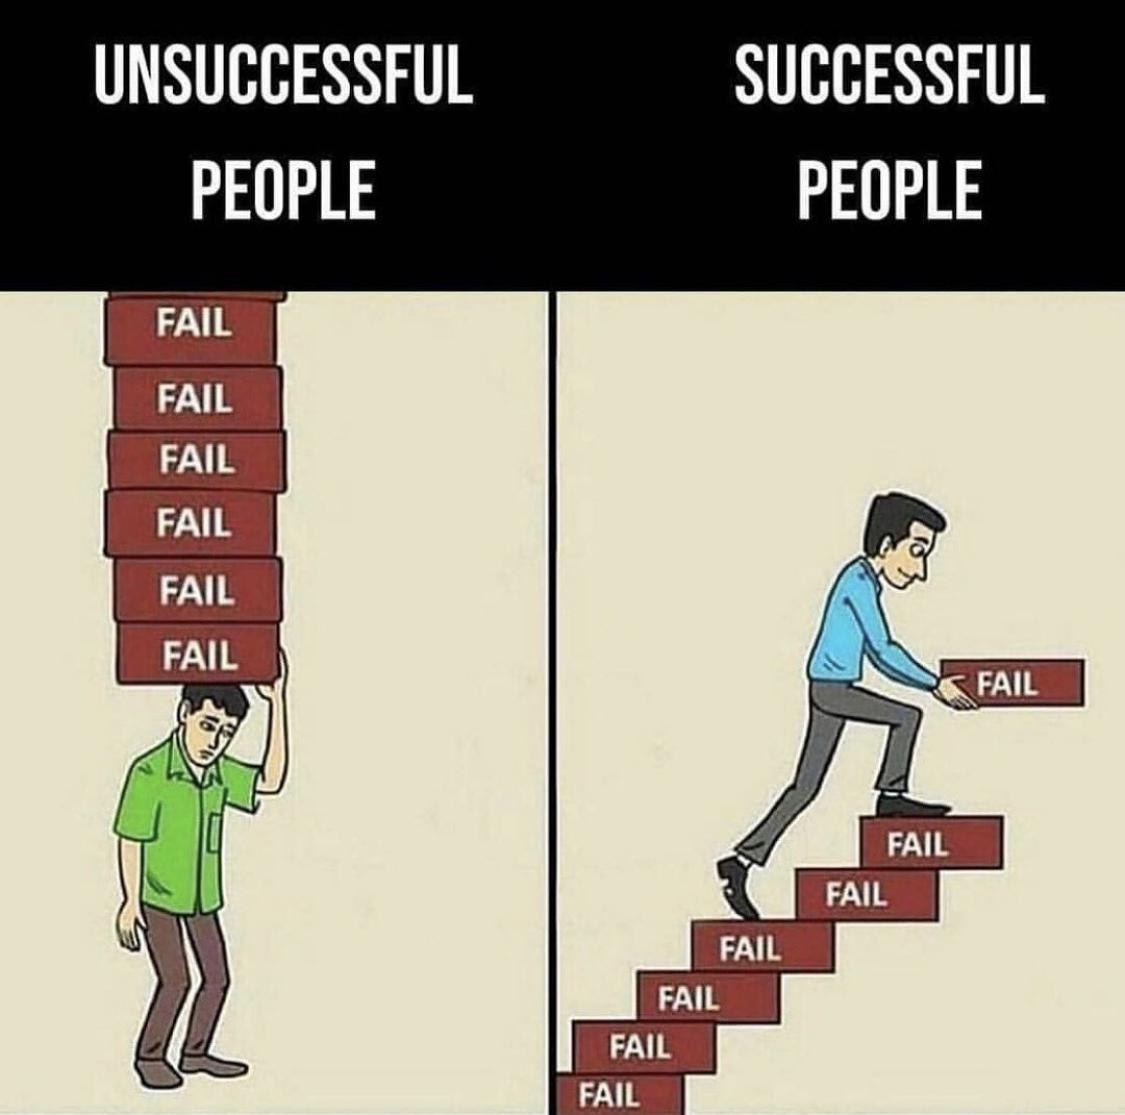 [Image] Use failure as a stepping stone…